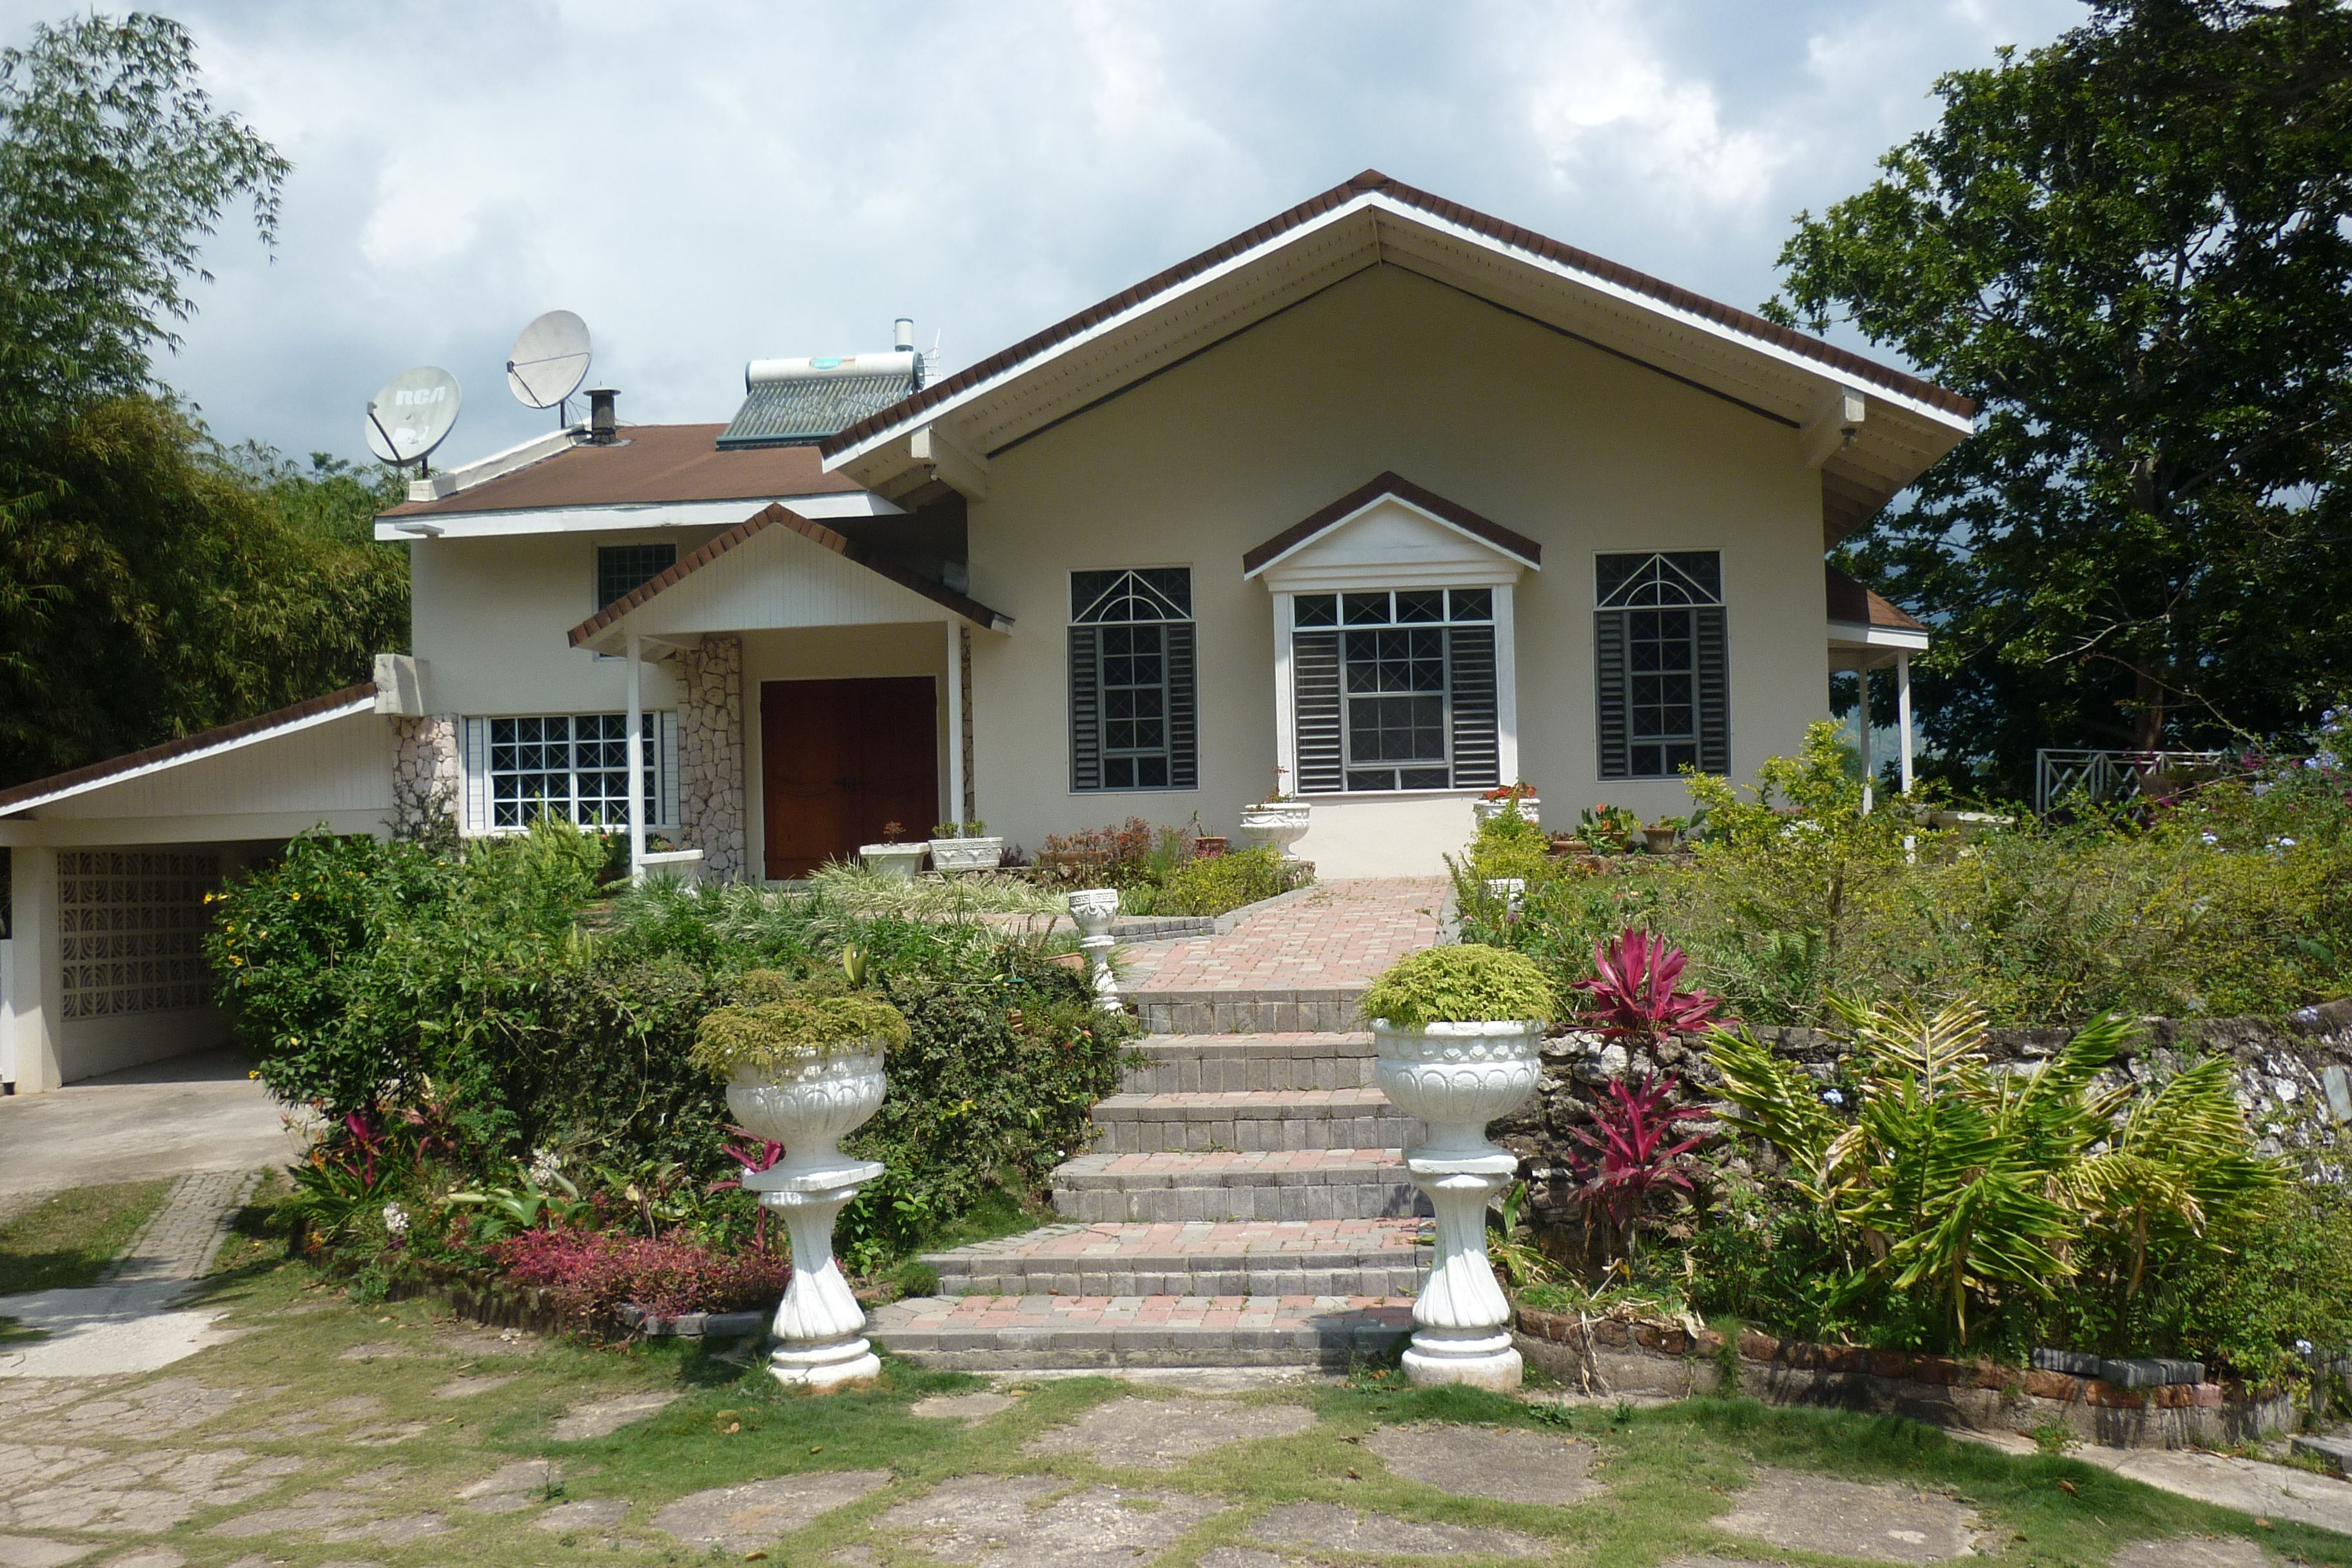 House For Sale In Kingston St Andrew Jamaica W I This Cosy Home Is Nestled On Approx 13 Acres In Smokey Vale House Design Cheap Houses For Sale Sale House